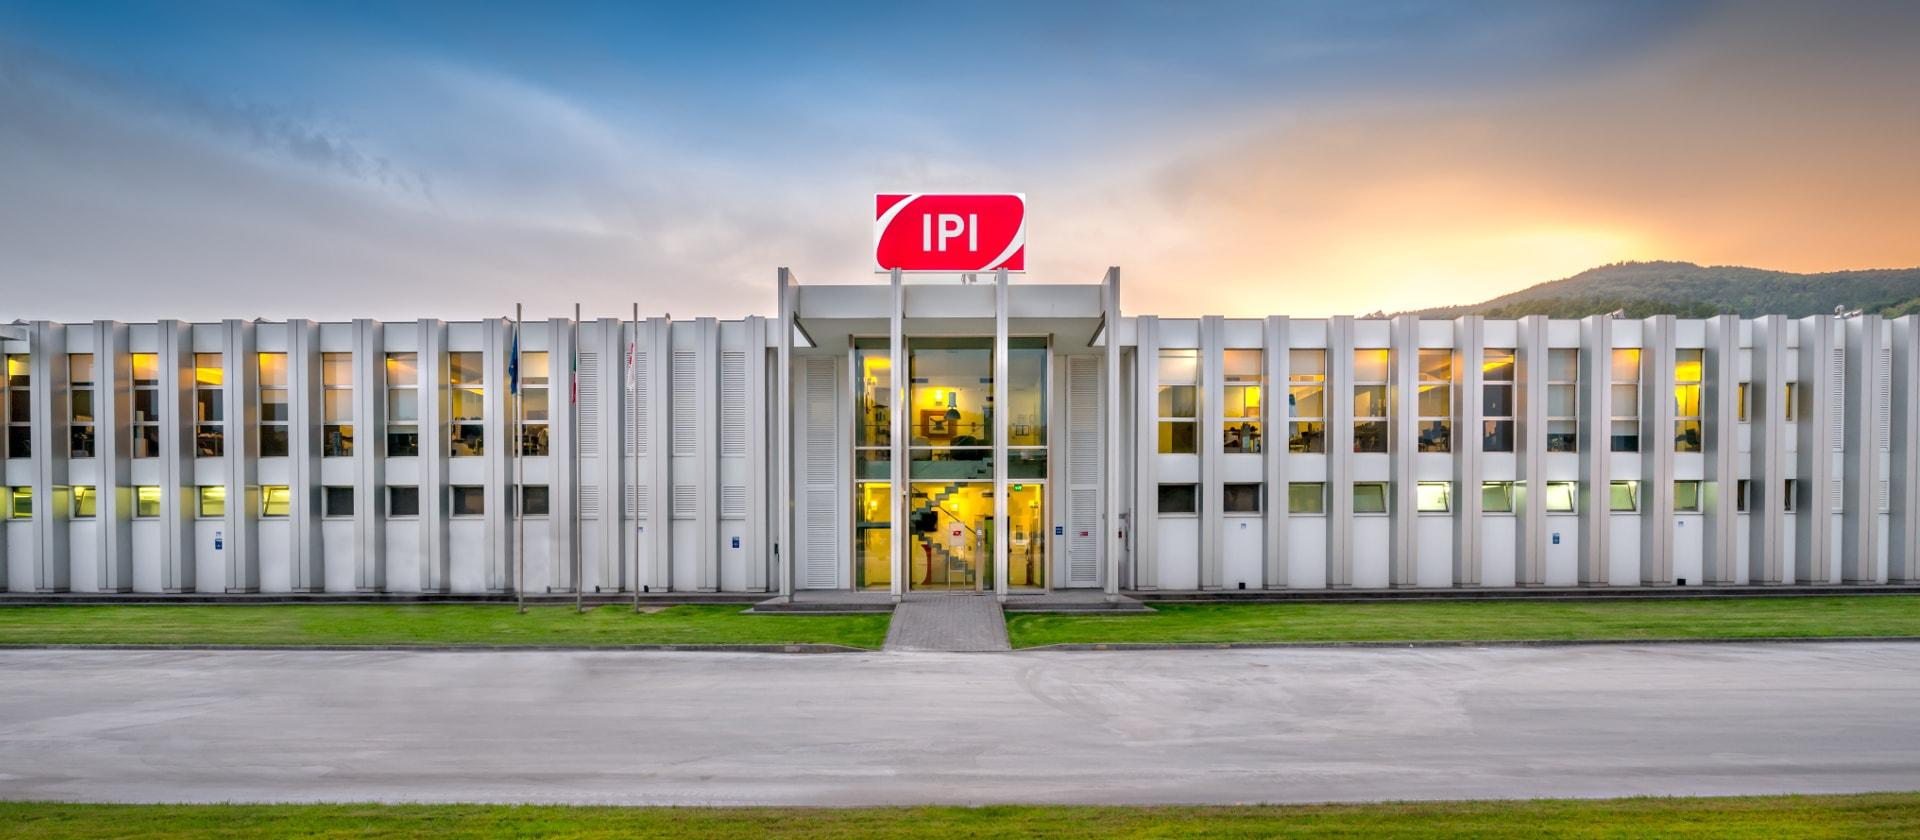 IPI, more than 38 years of successes